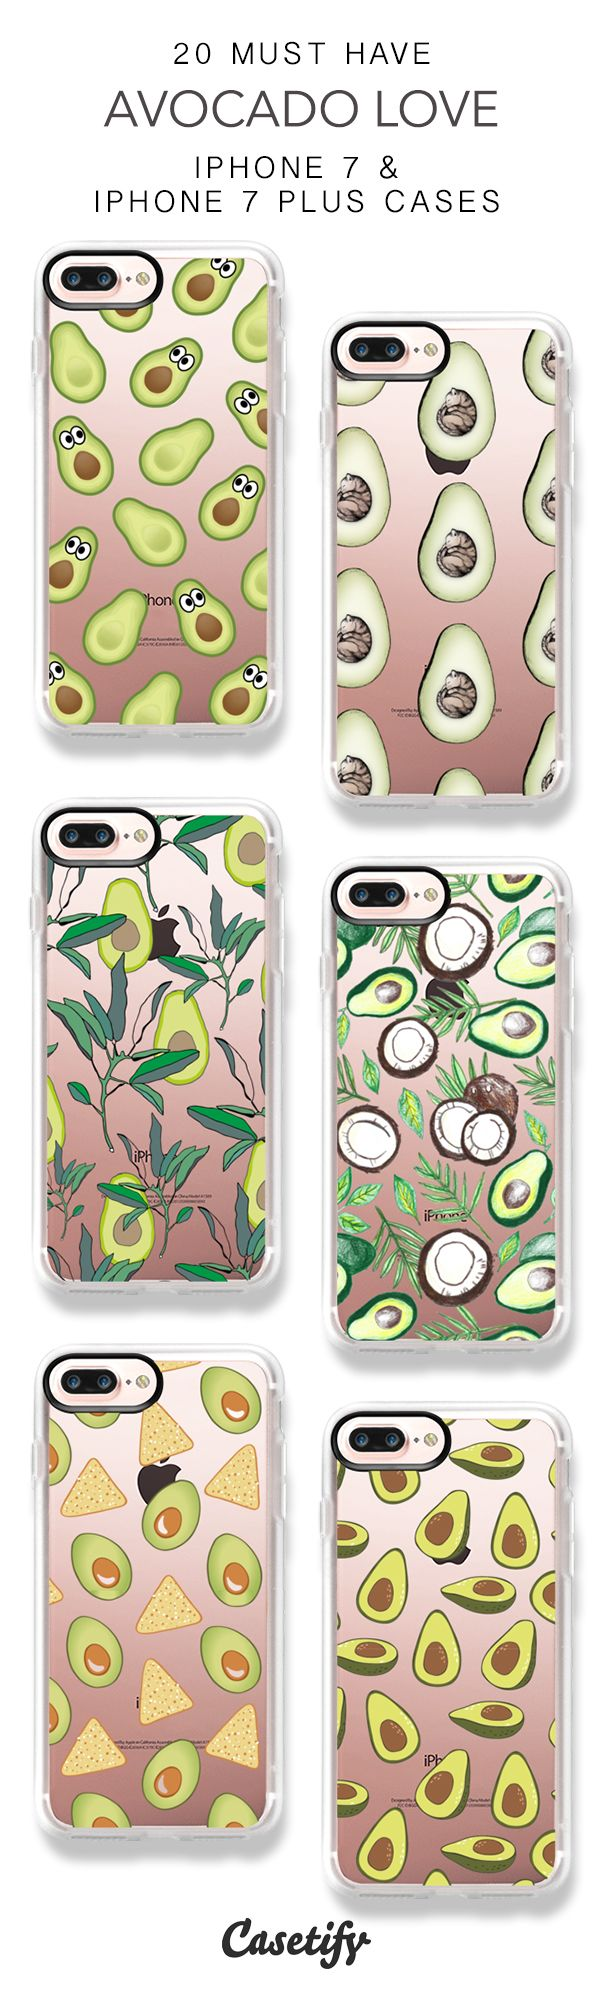 20 Must Have Avocado Lover Protective iPhone 7 Cases and iPhone 7 Plus Cases. More Food iPhone case here > https://www.casetify.com/collections/top_100_designs#/?vc=atehLwyIVJ